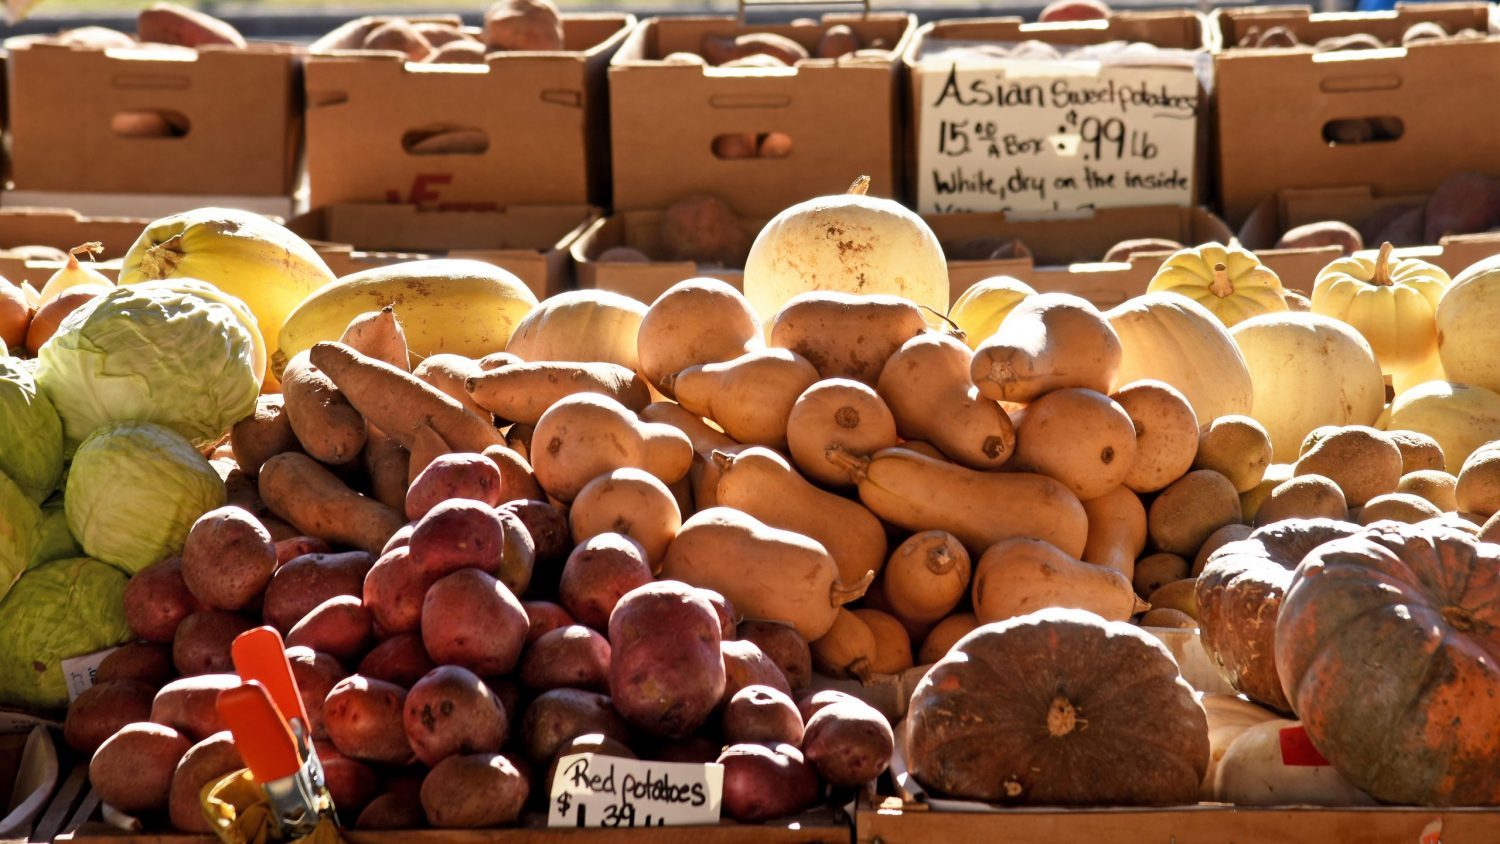 Grounds and other produce displayed at a farmers market stand